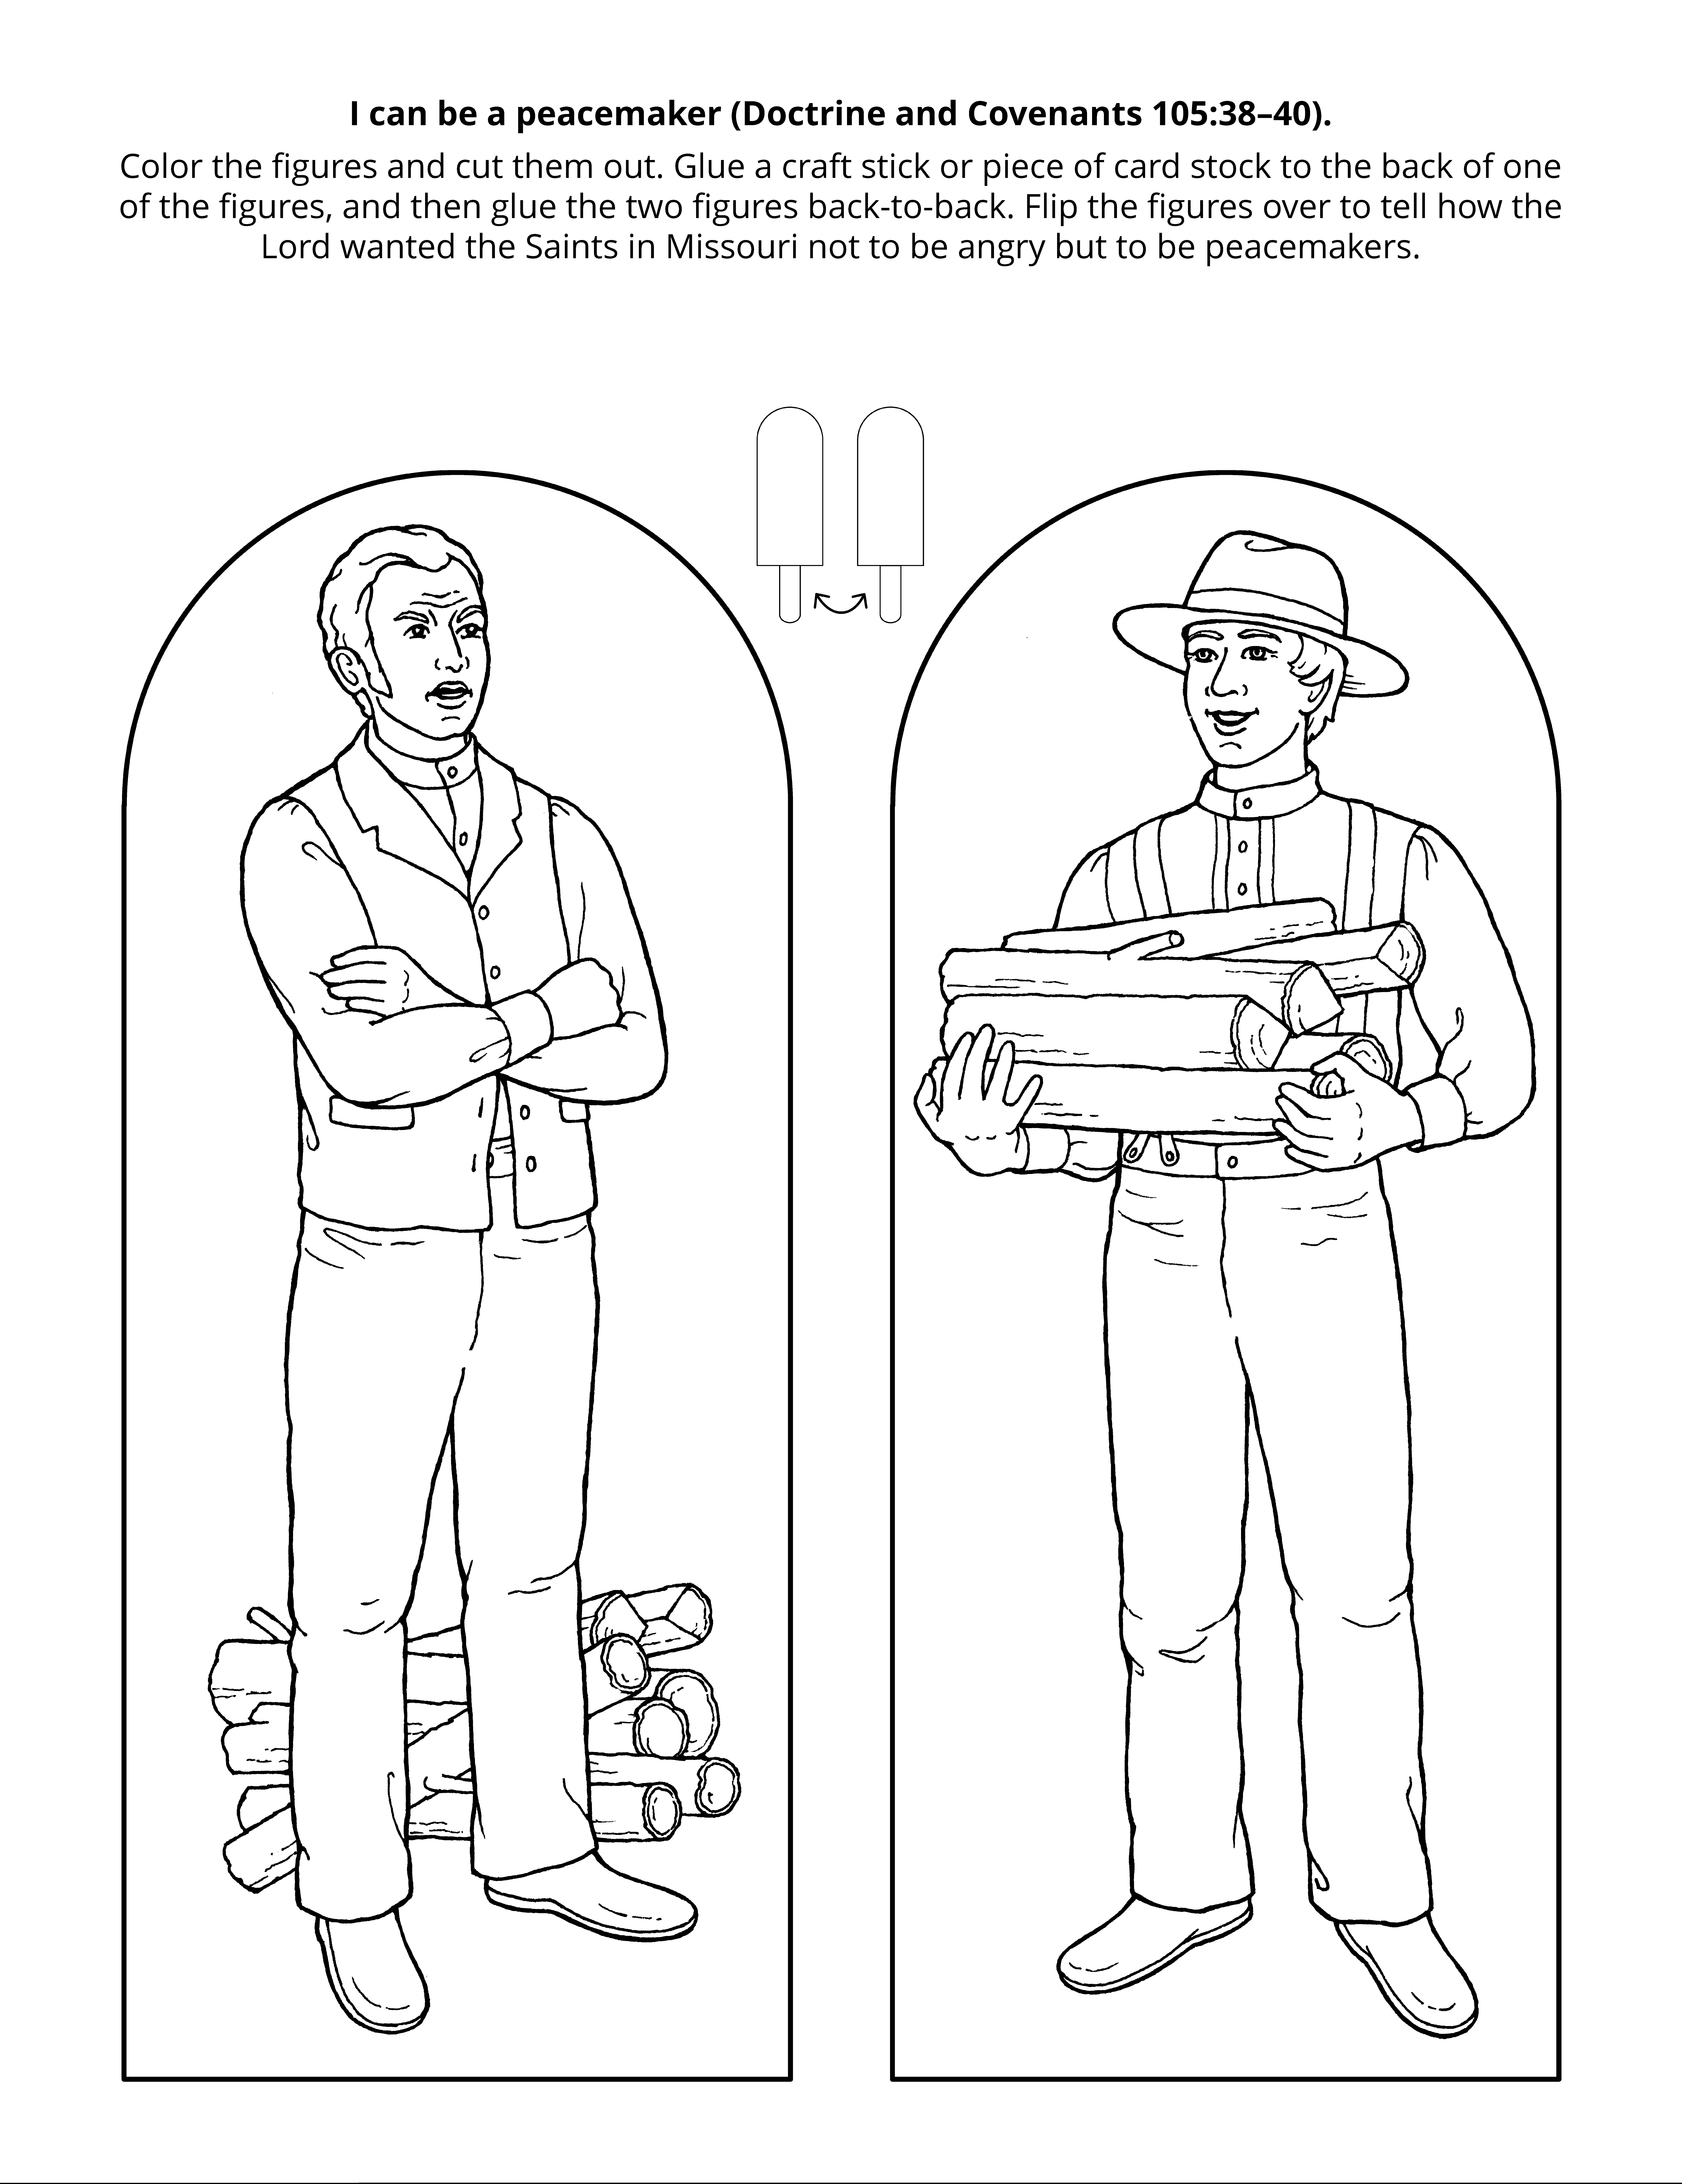 Line drawing of two figures.